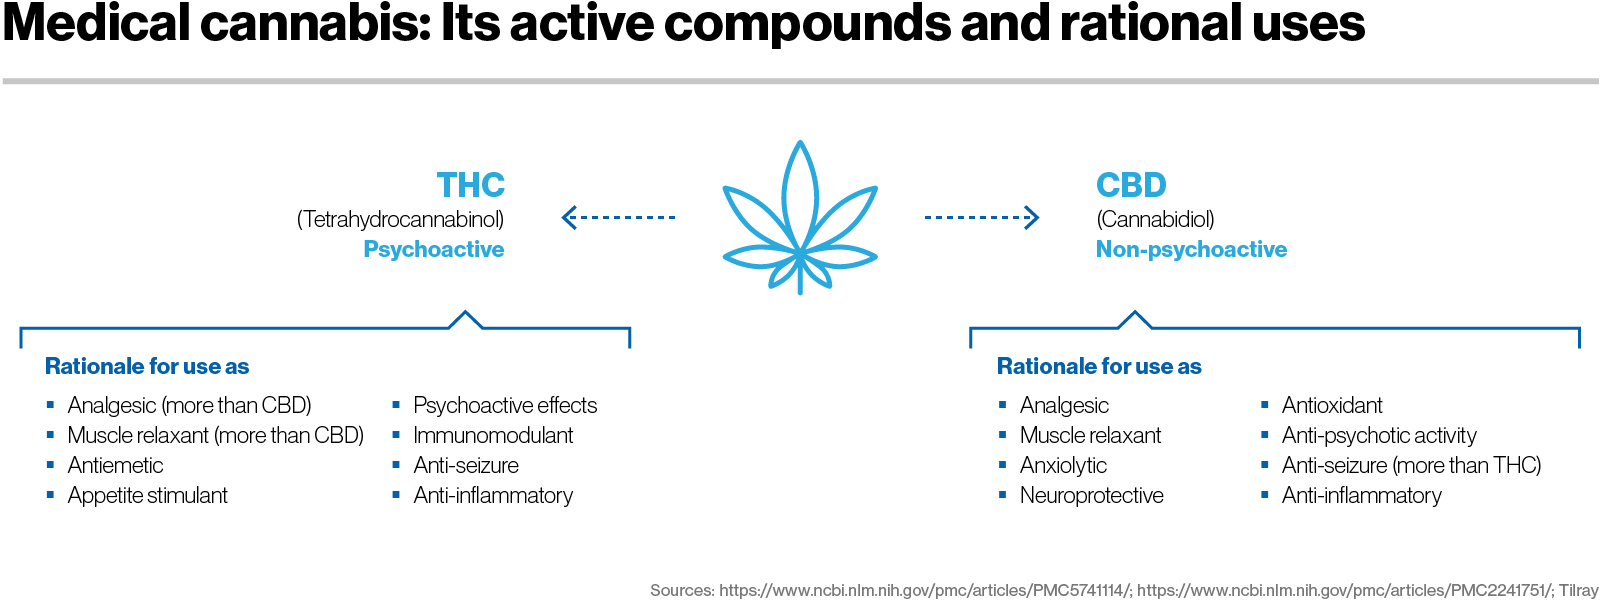 Medical cannabis: Its active compounds and rational uses